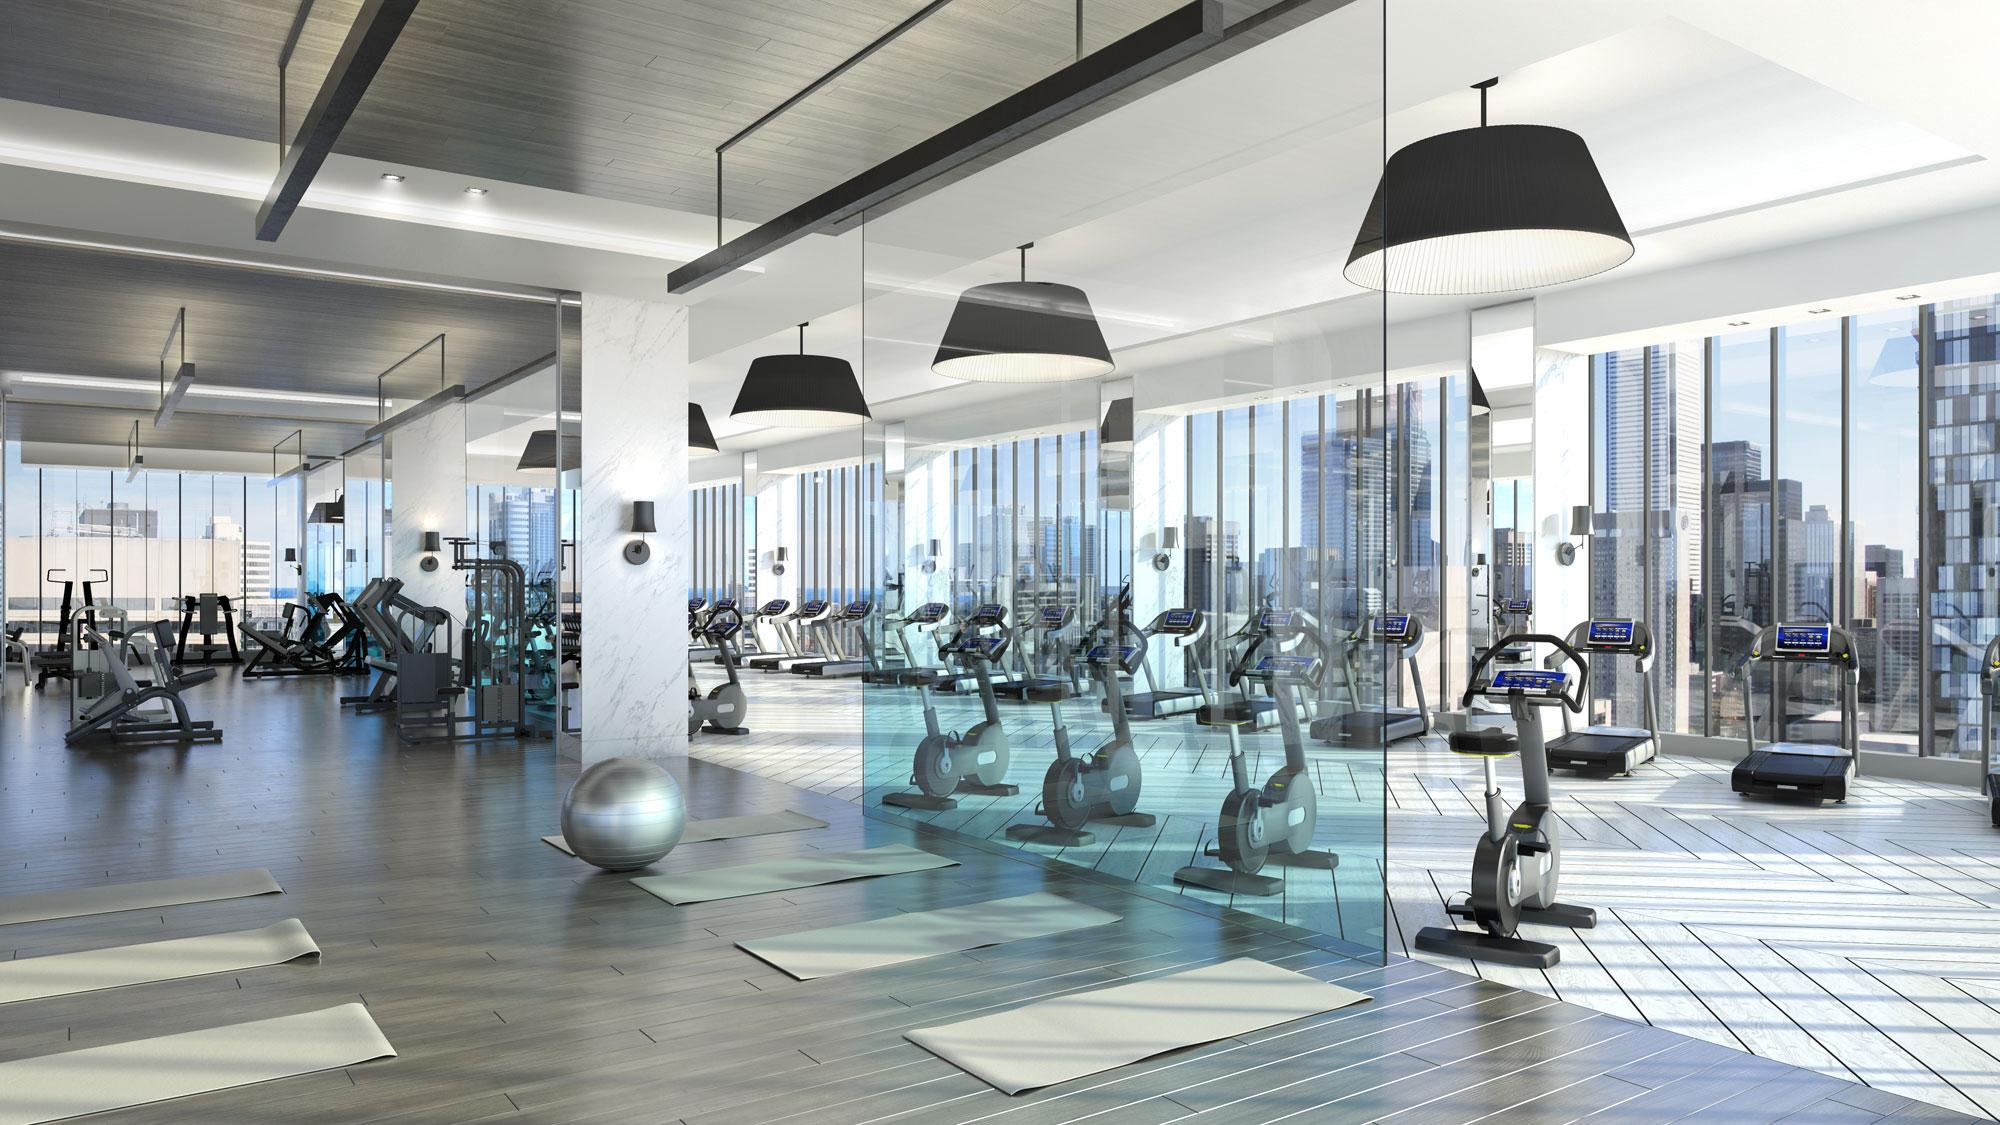 Image of gym and equipment at United Condos.